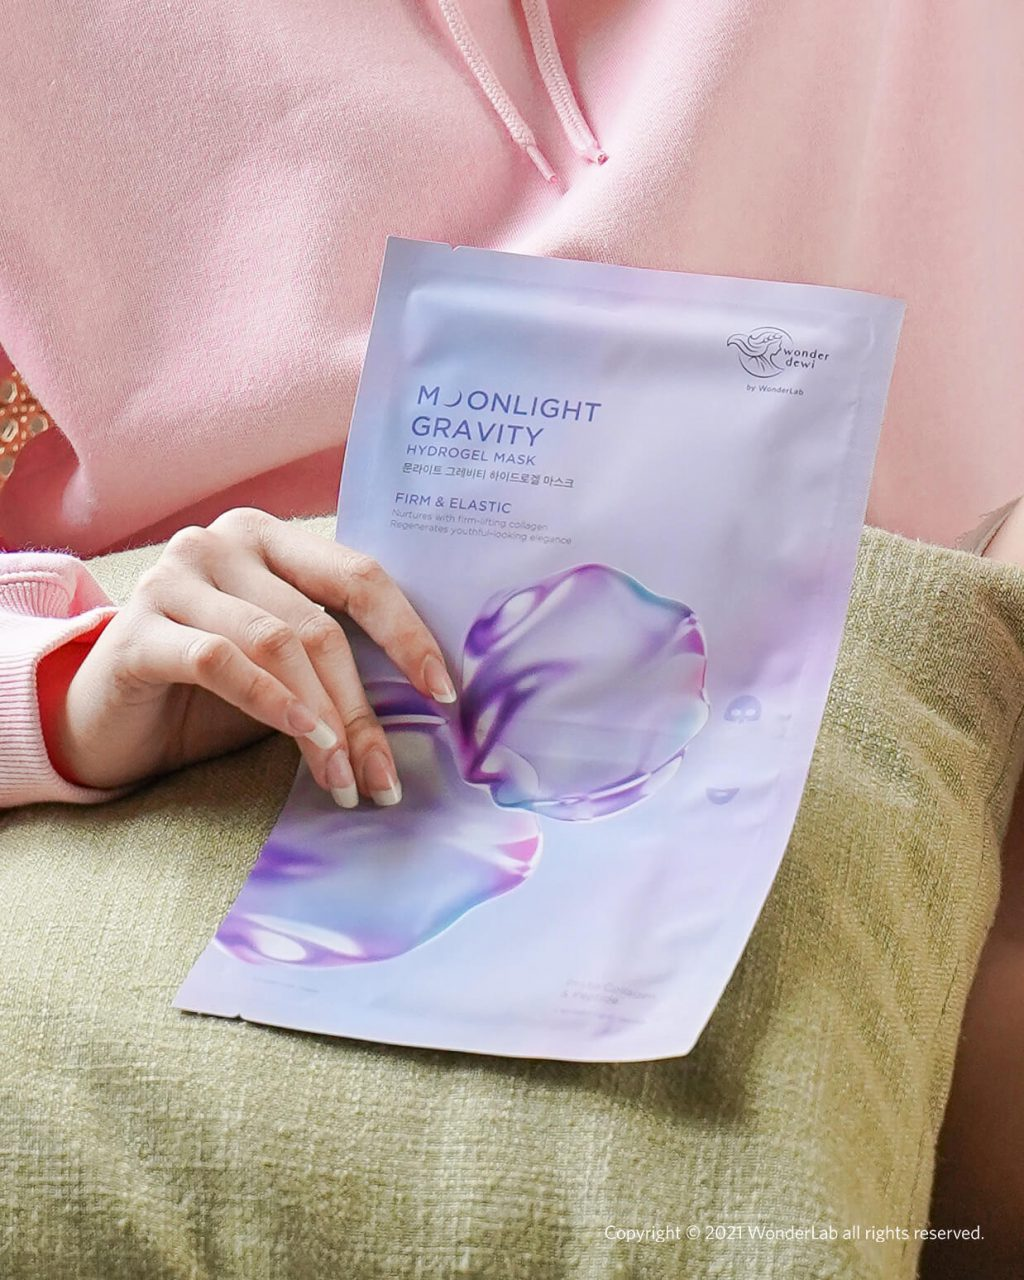 Moonlight Gravity Hydrogel Mask